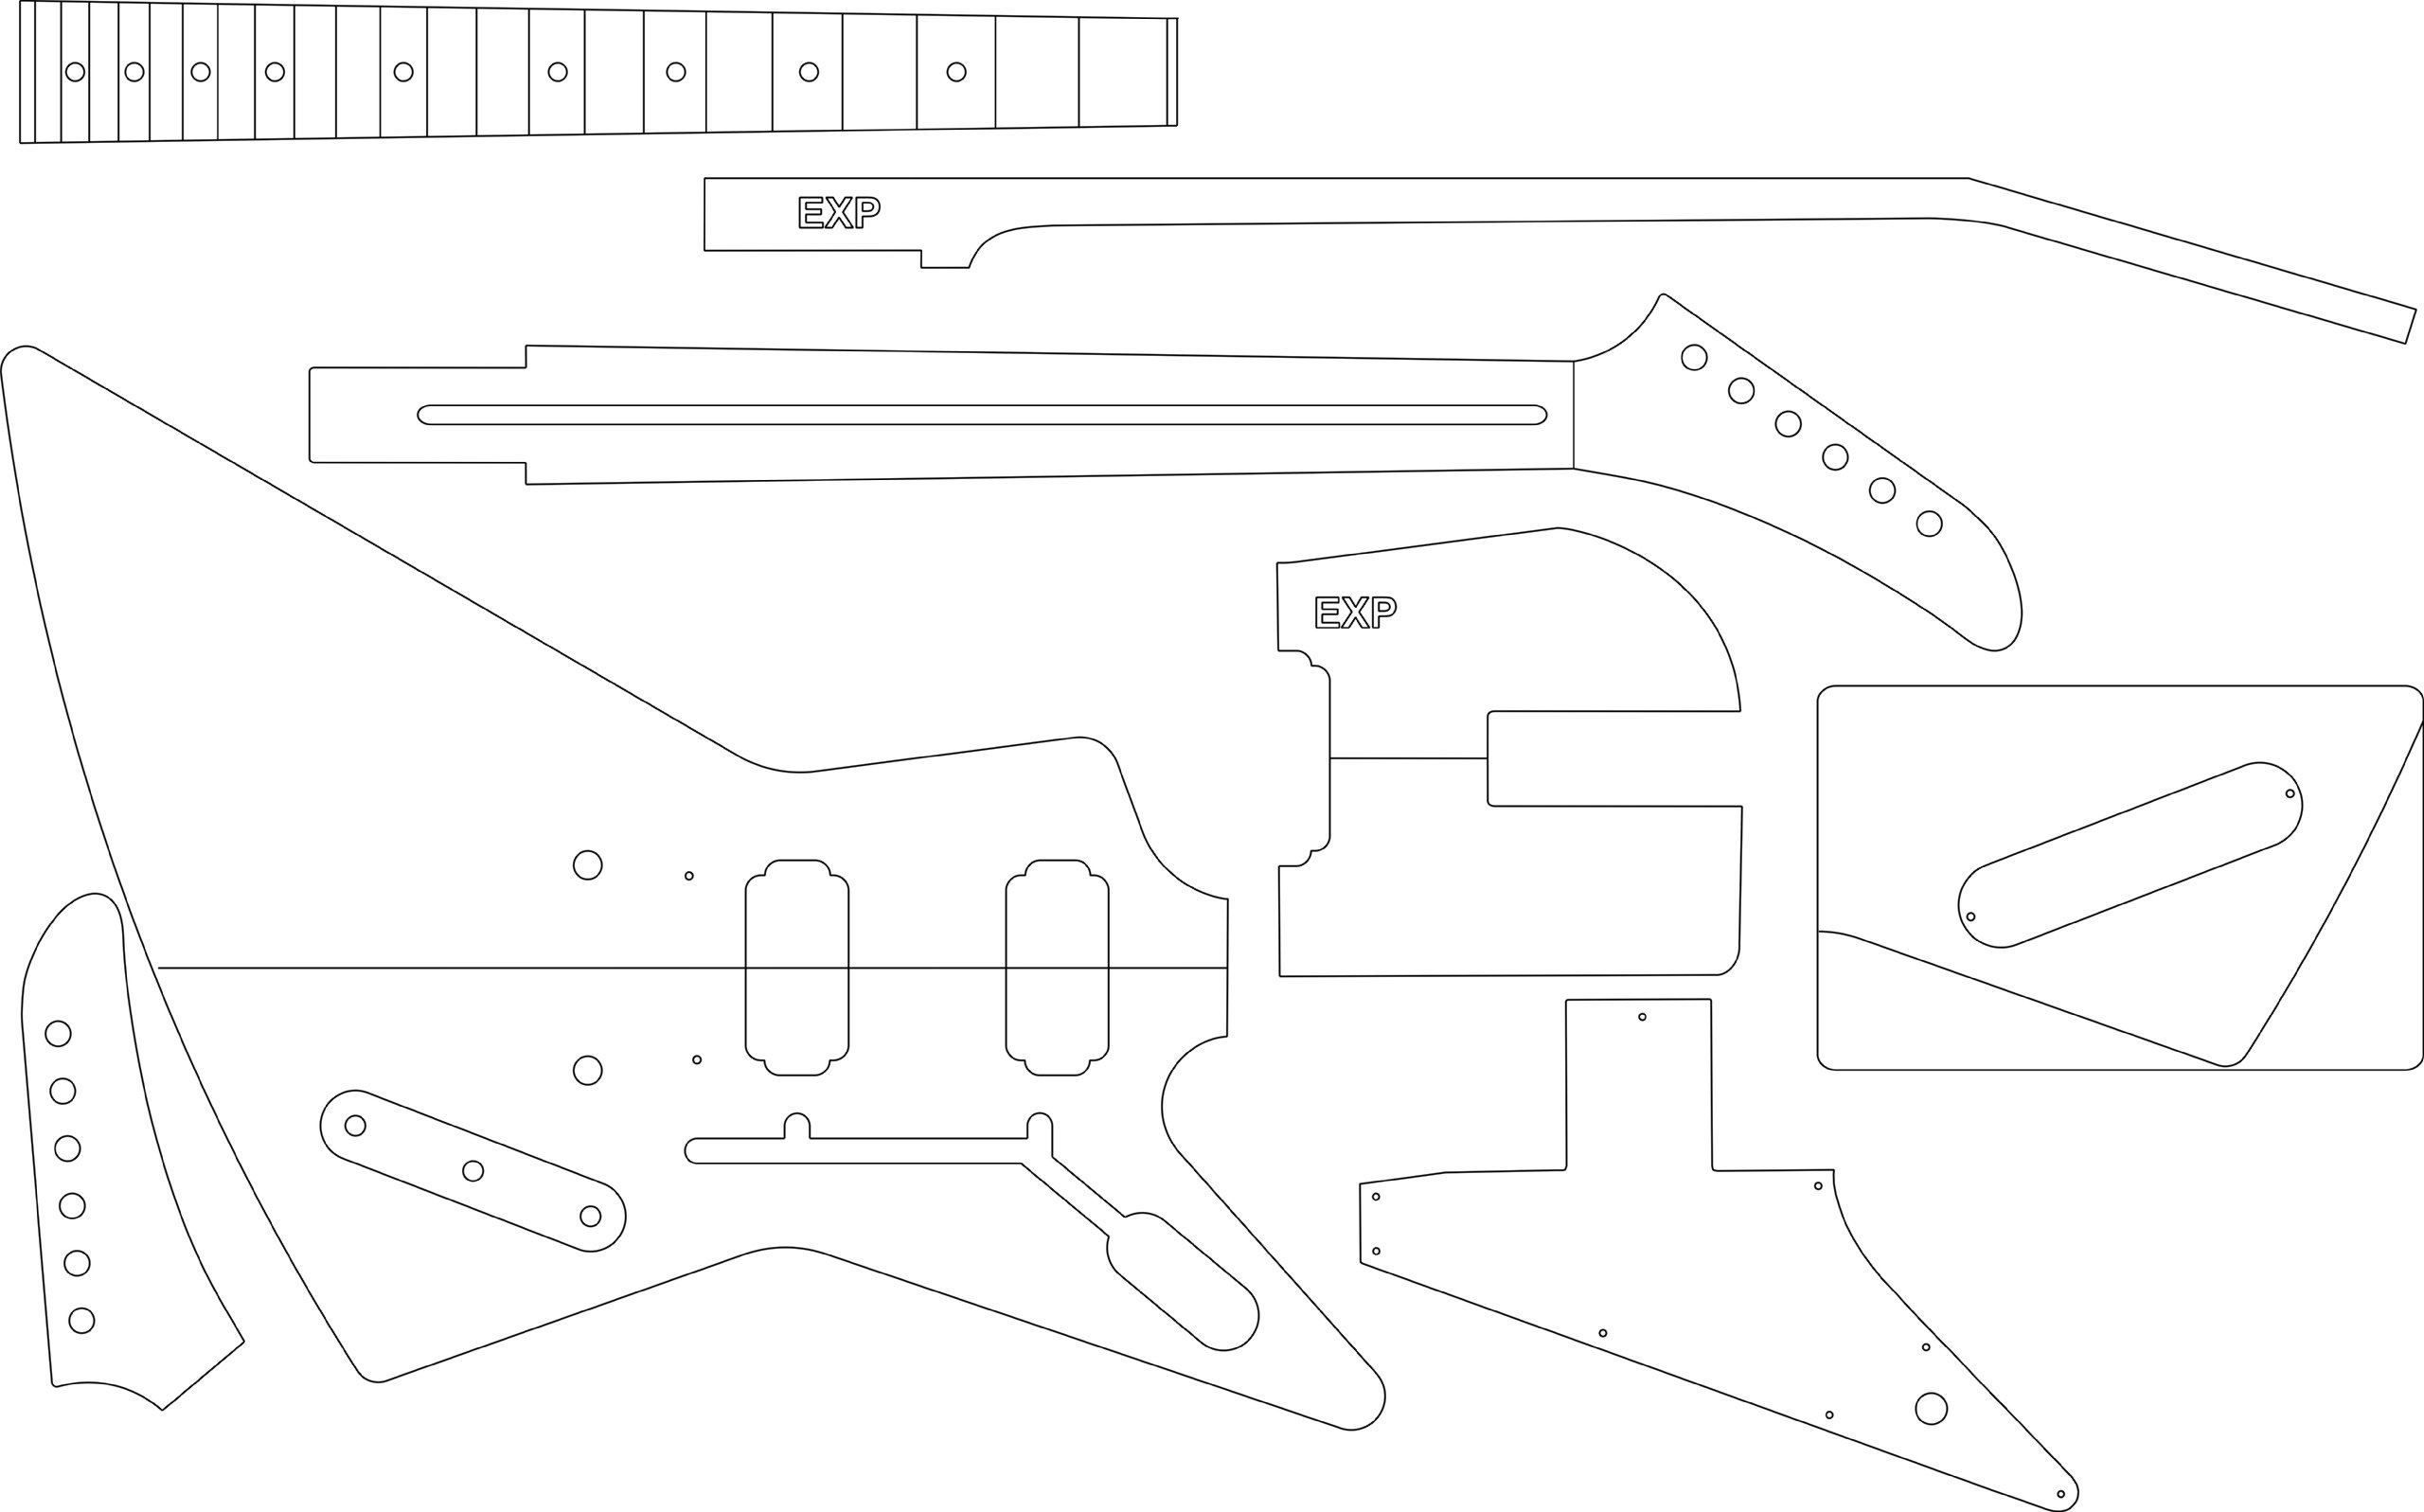 Electric Guitar Layout Template - Explorer by GPC (Image #1)